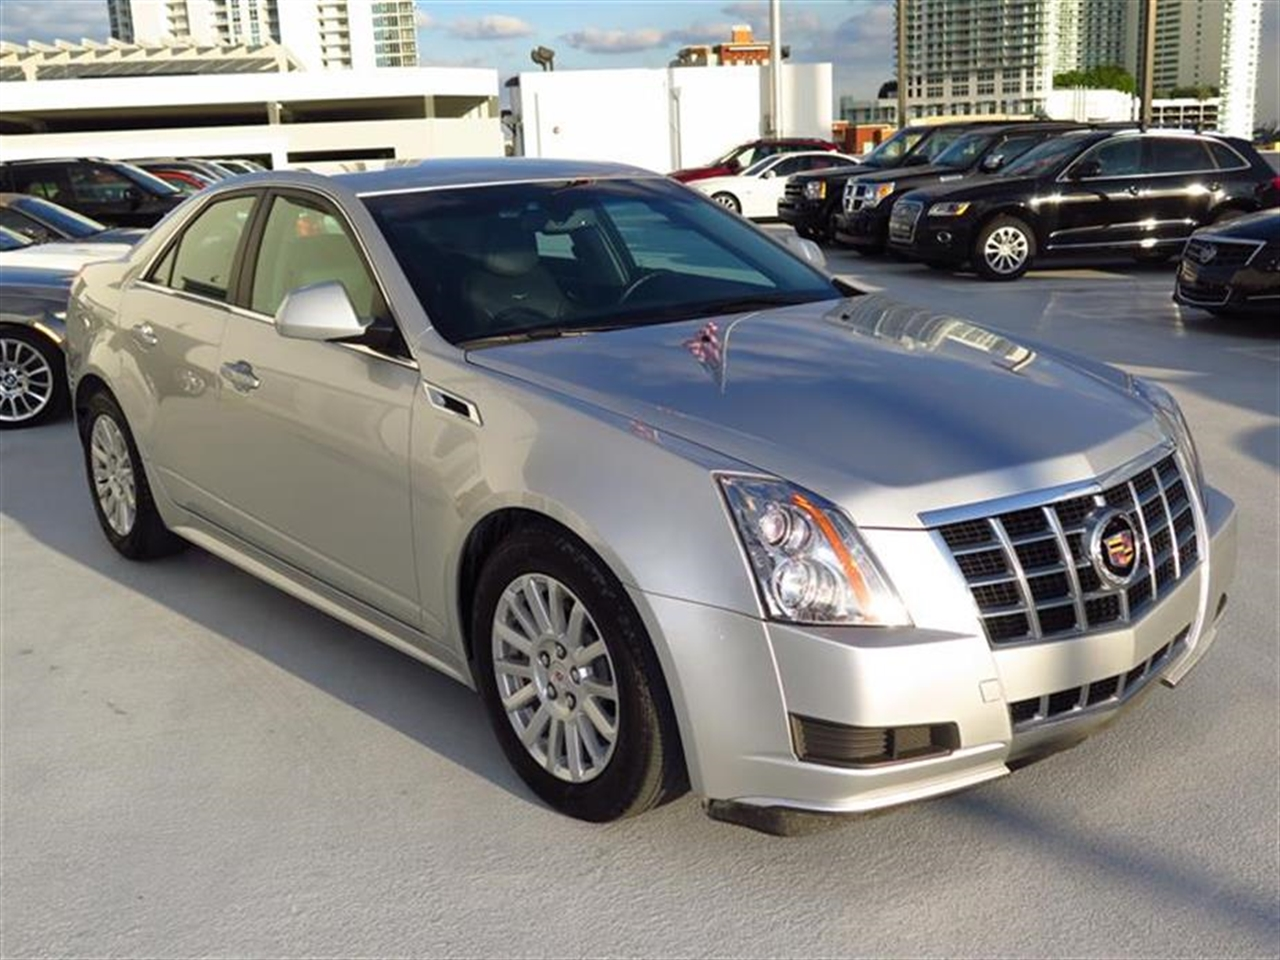 2013 CADILLAC CTS 4dr Sdn 30L Luxury RWD 9470 miles VIN 1G6DE5E5XD0140103